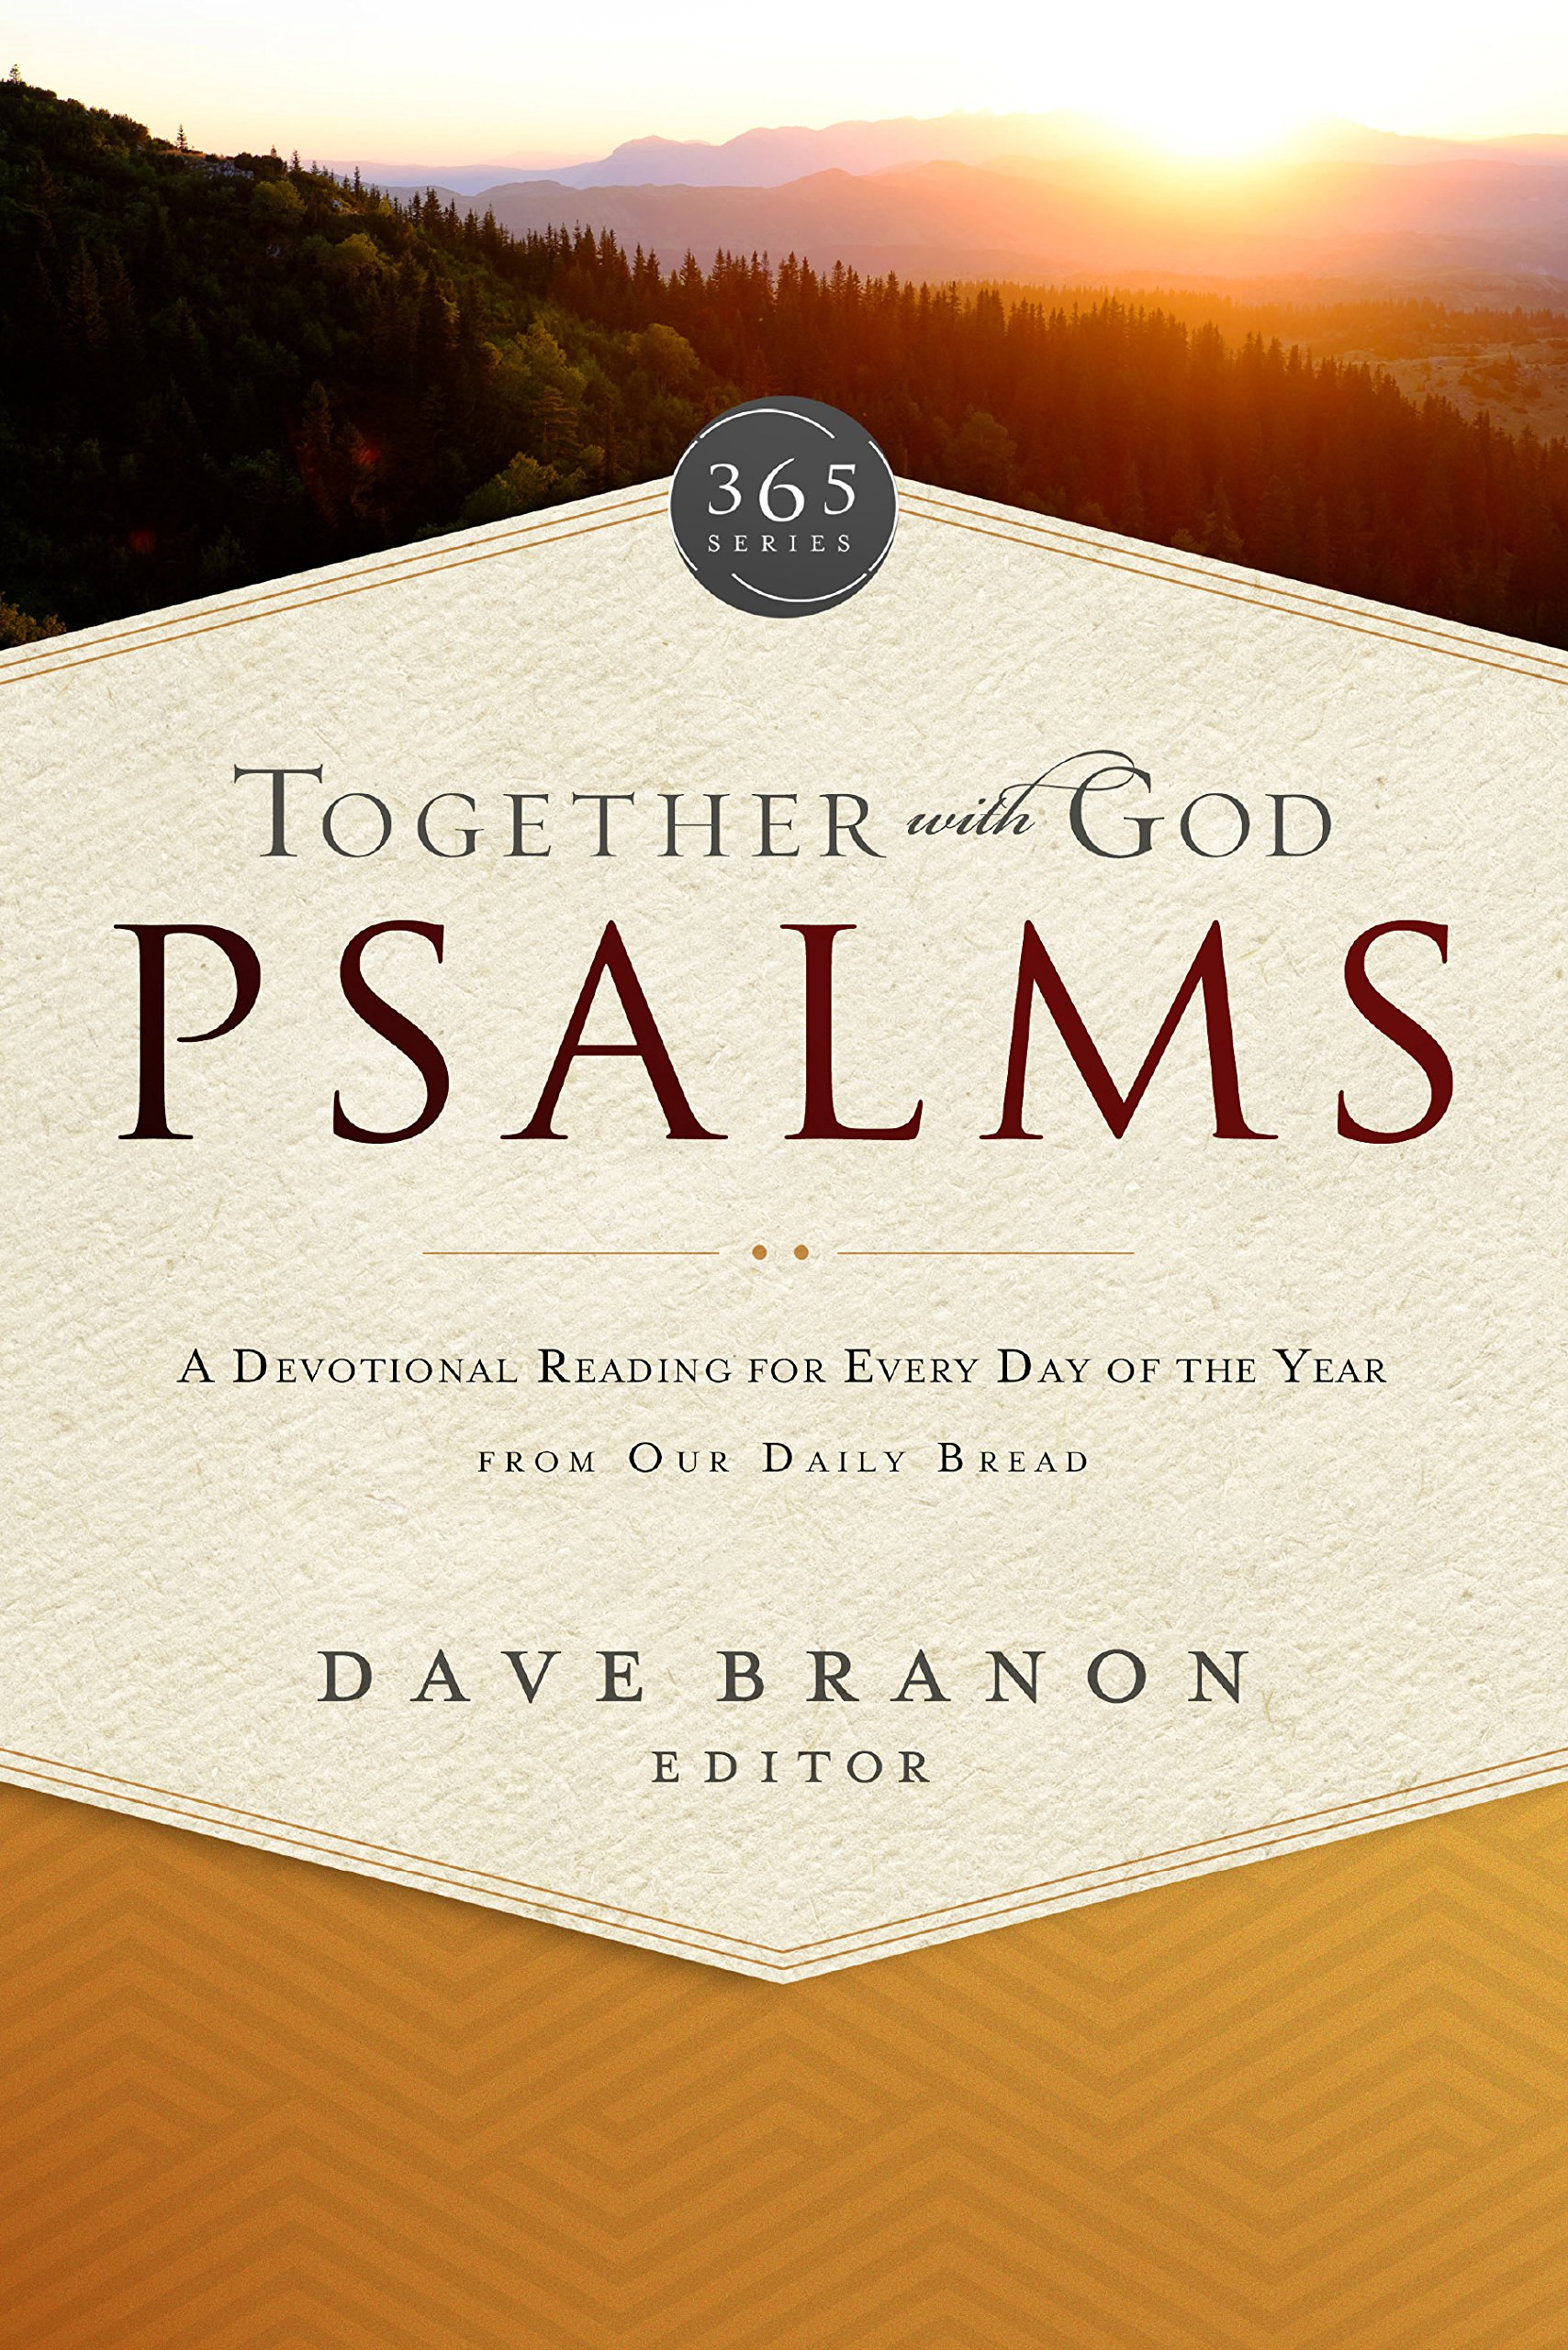 together-with-god-psalms-a-devotional-reading-for-every-day-of-the-year-from-our-daily-bread-365-series